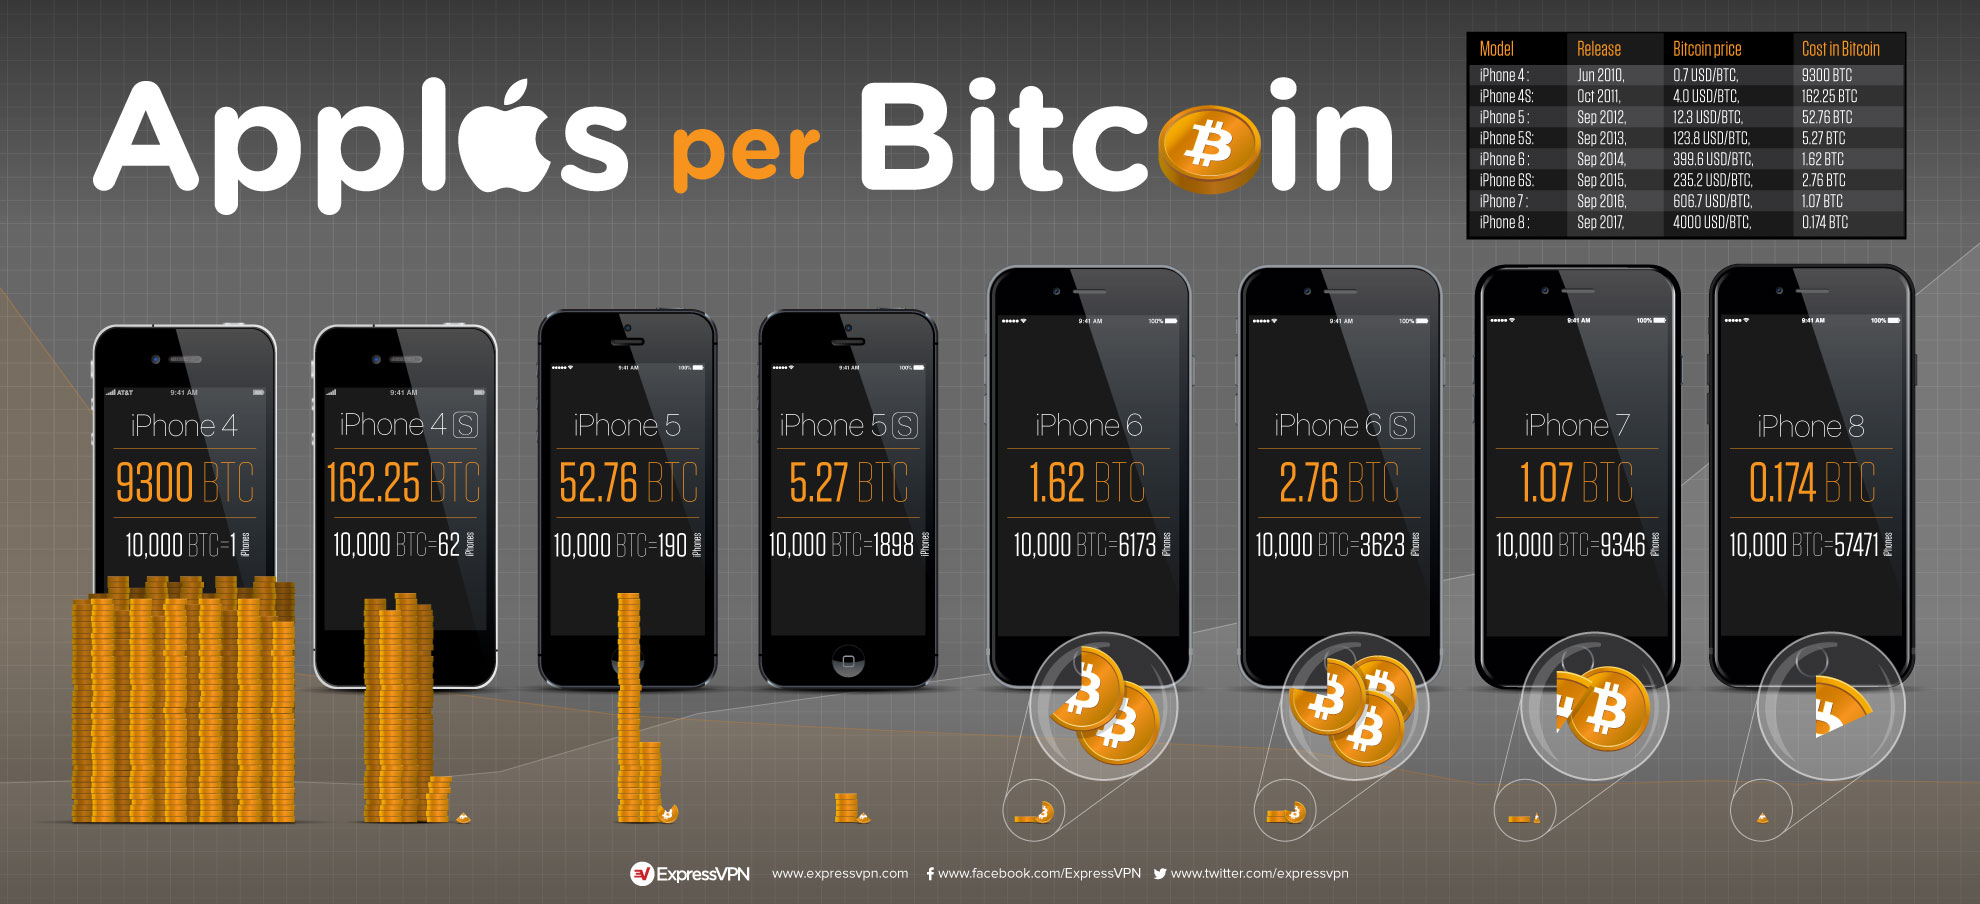 What's an iPhone worth in Bitcoin?